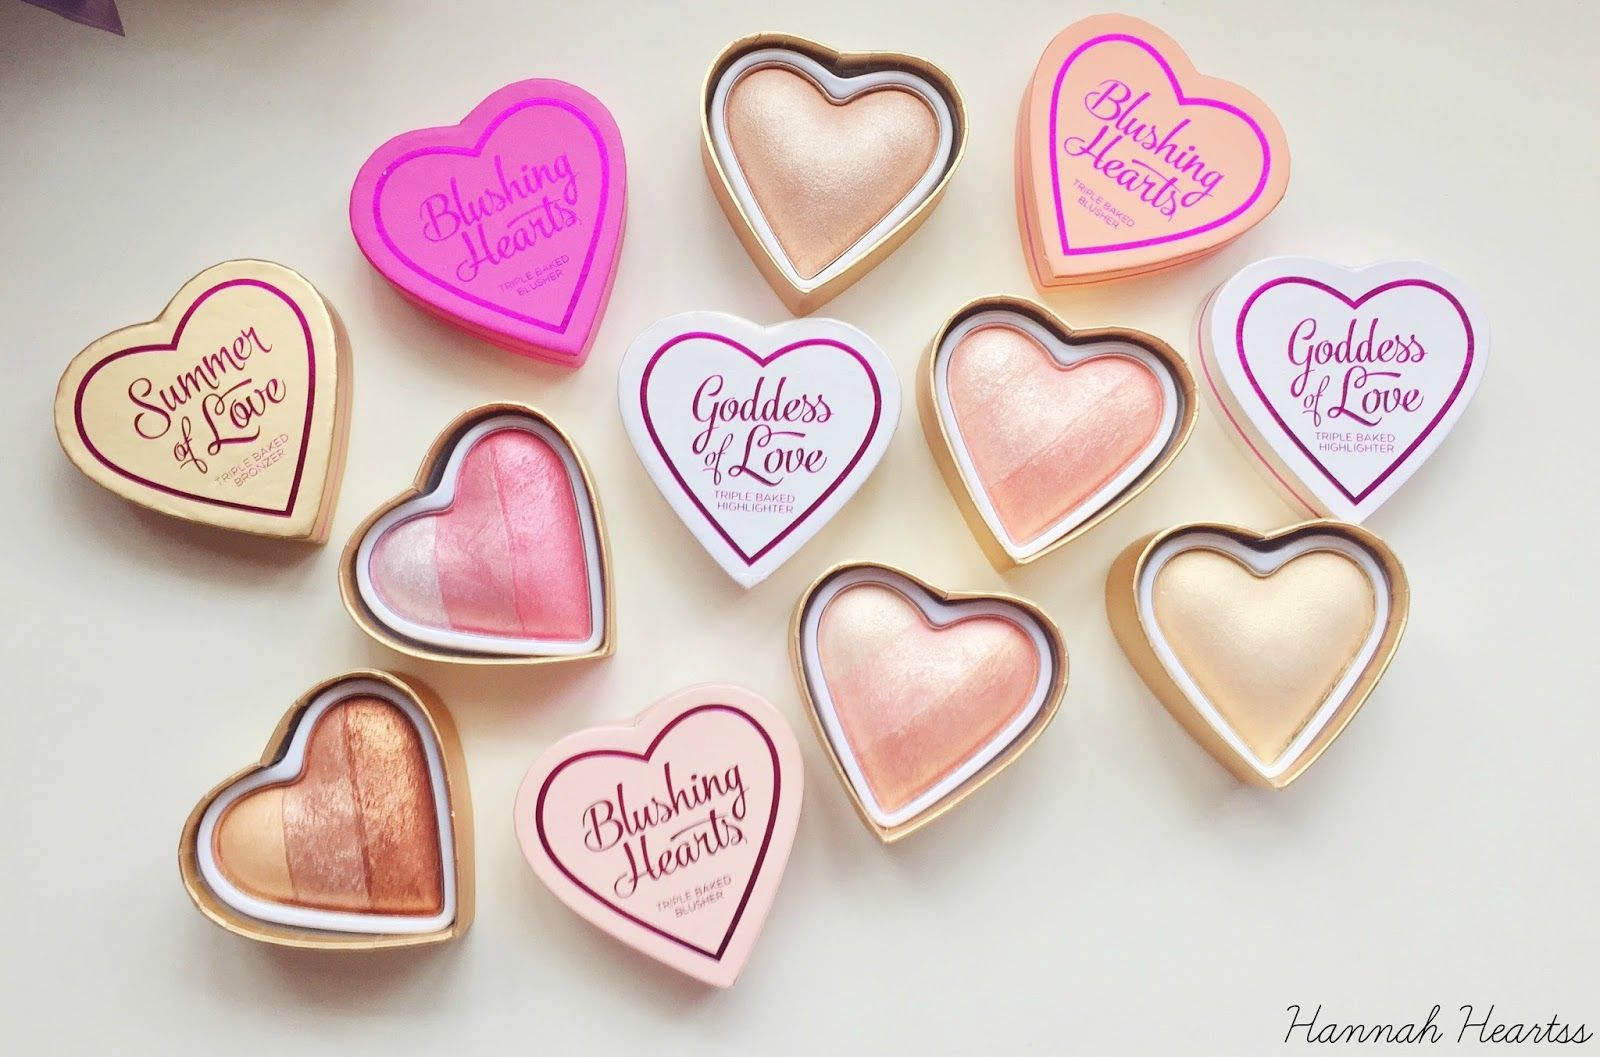 I ♡ Makeup Blushing HeartsHot Summer of love Google